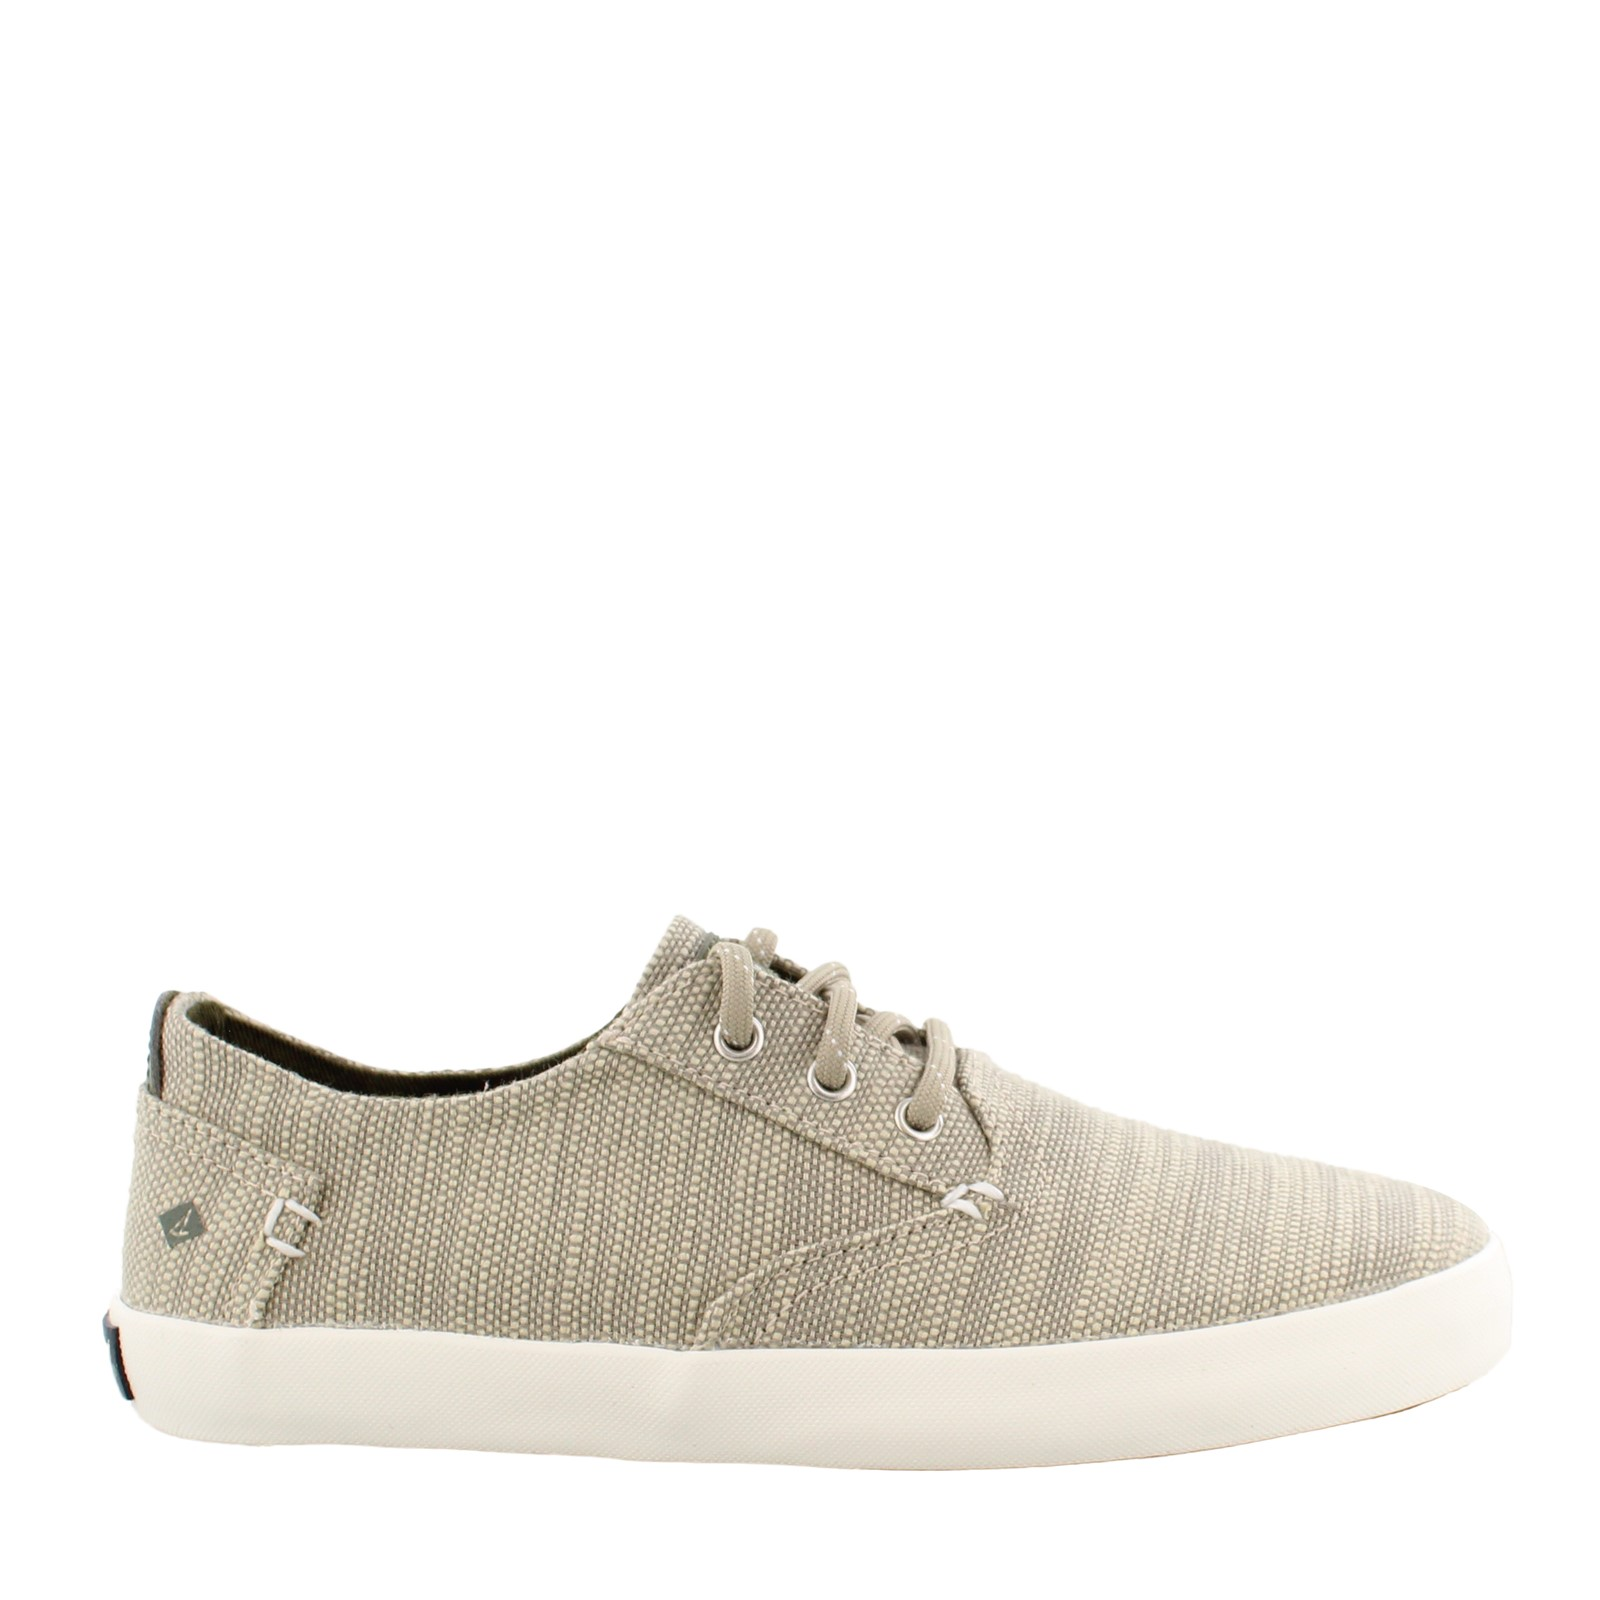 Boy's Sperry, Bodie Sneaker - Little Kid & Big Kid